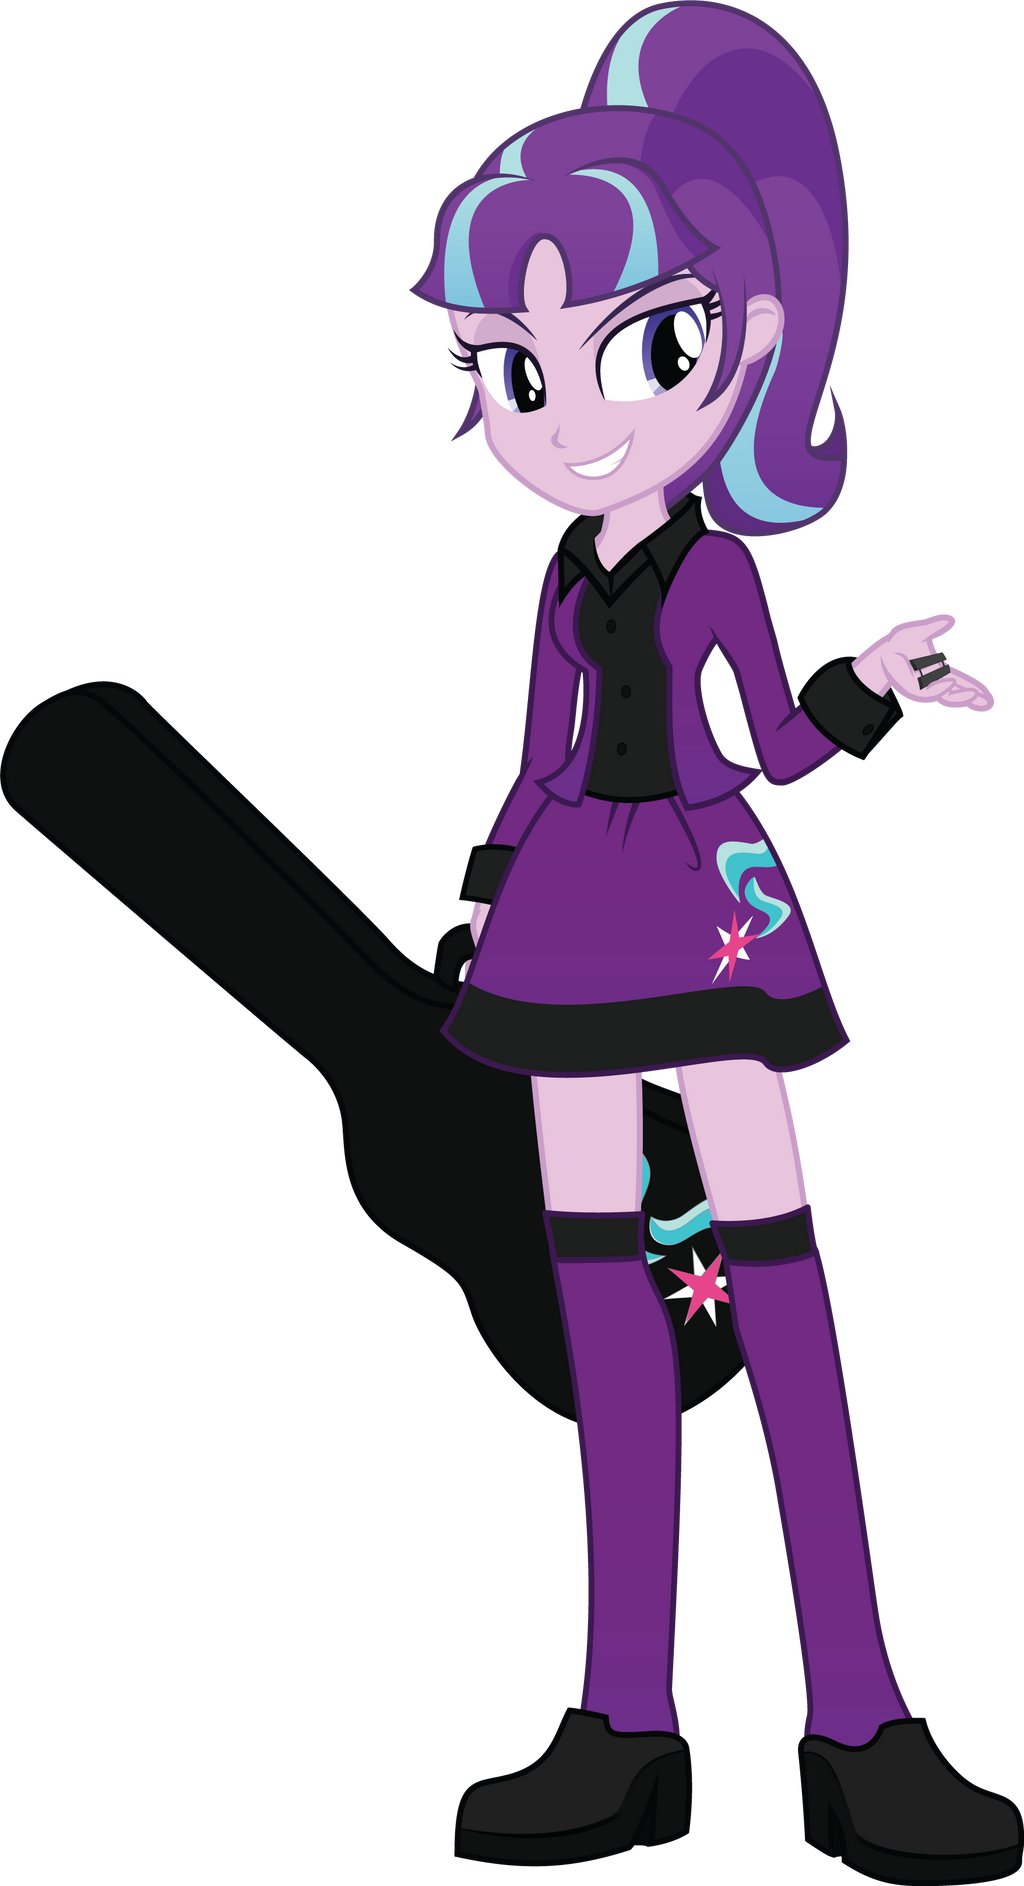 Equestria Girls: Starlight Glimmer by geekladd on DeviantArt